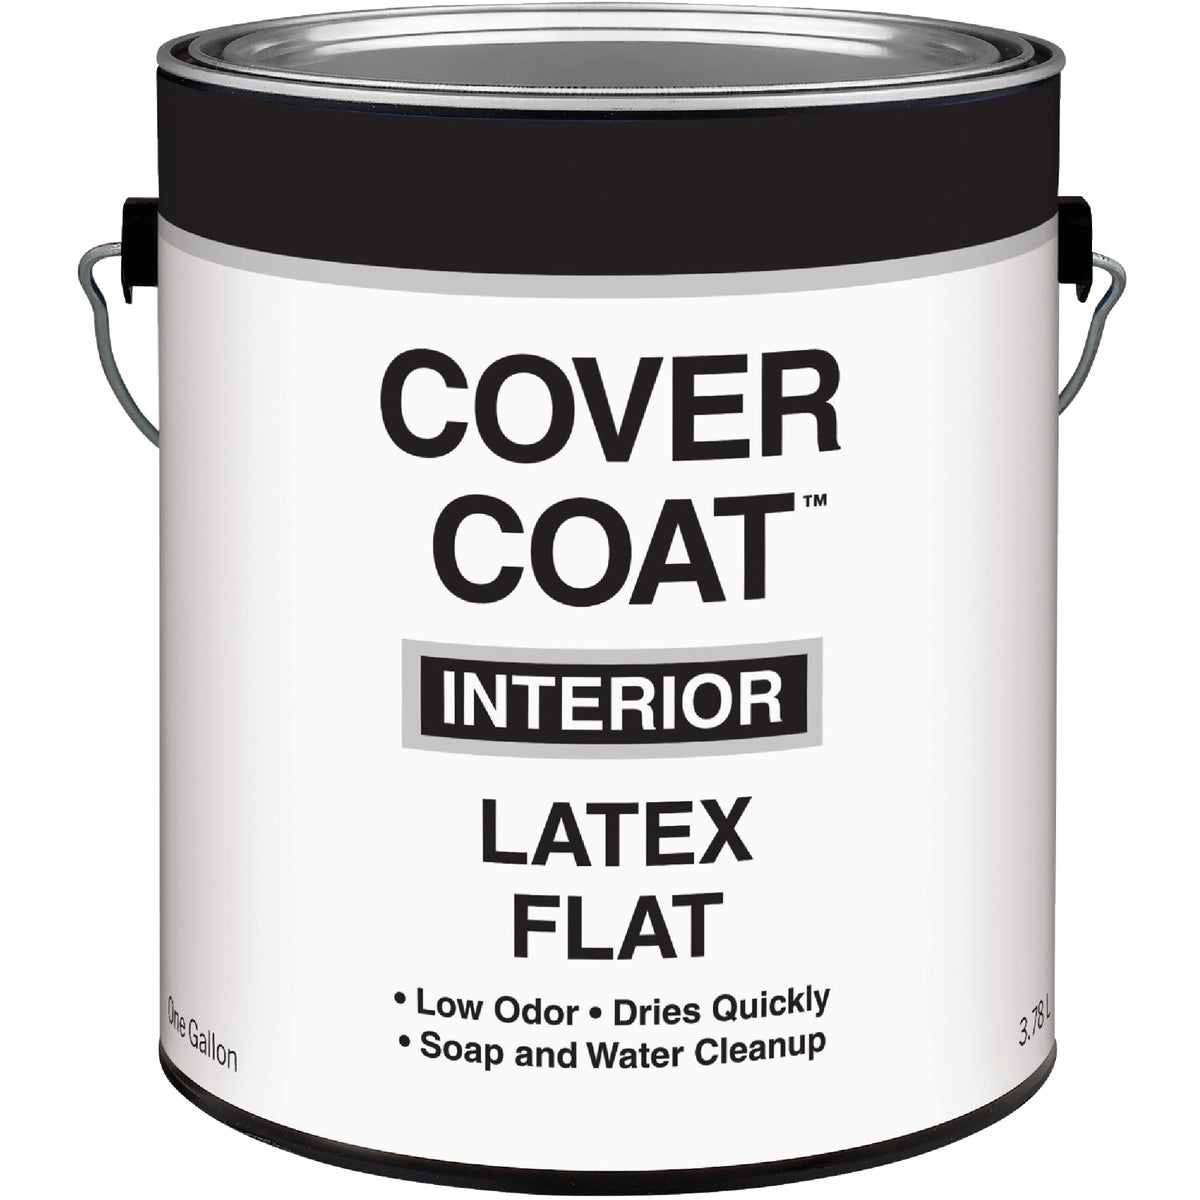 INT FLAT WHITE PAINT - 044.0000255.007 by Valspar Corp